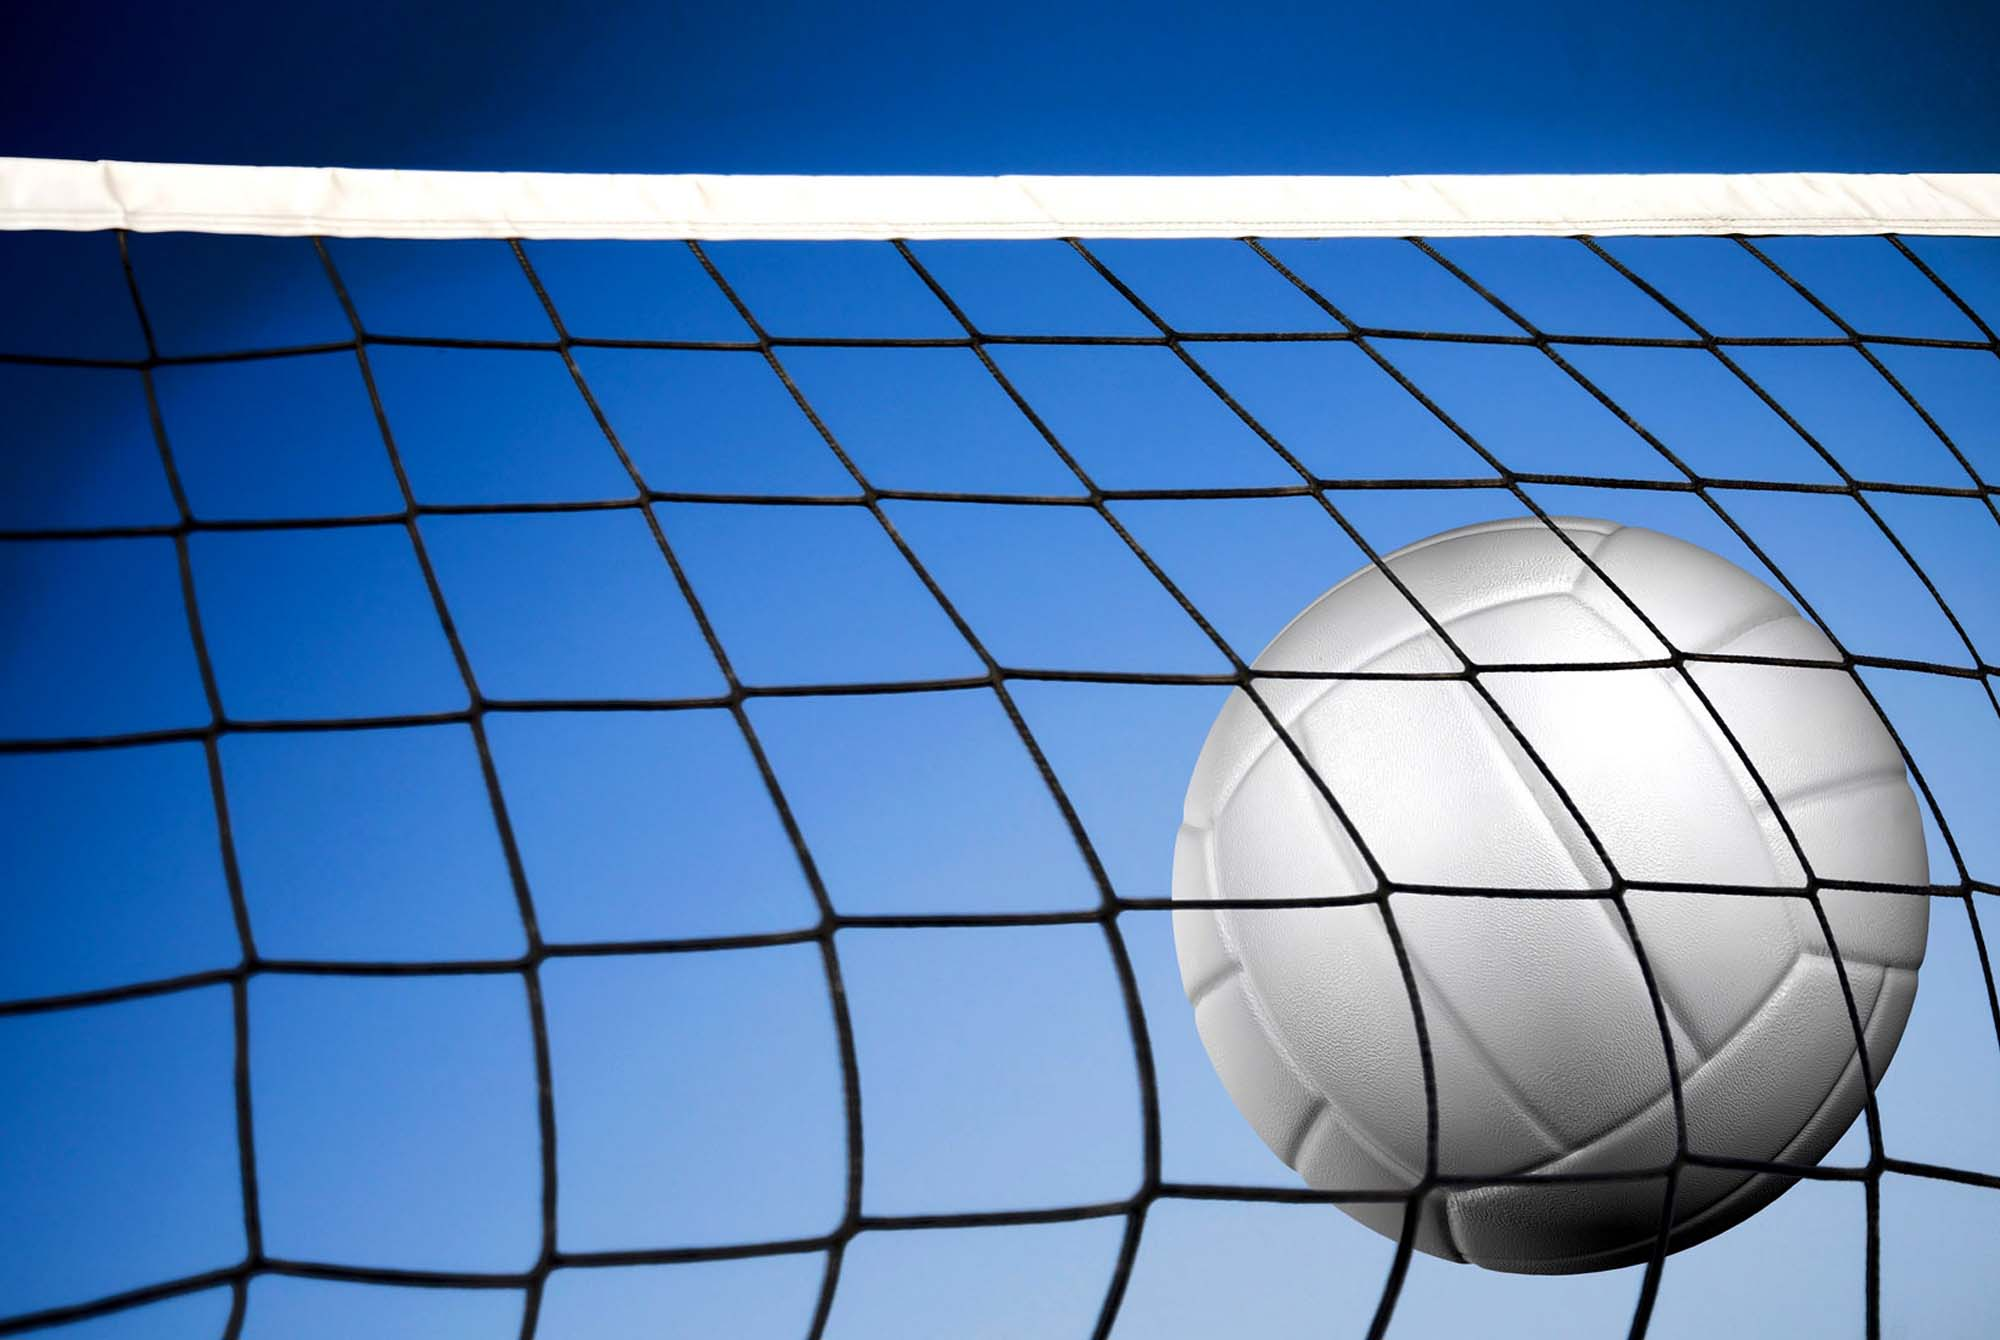 volleyball-class-background-image_01